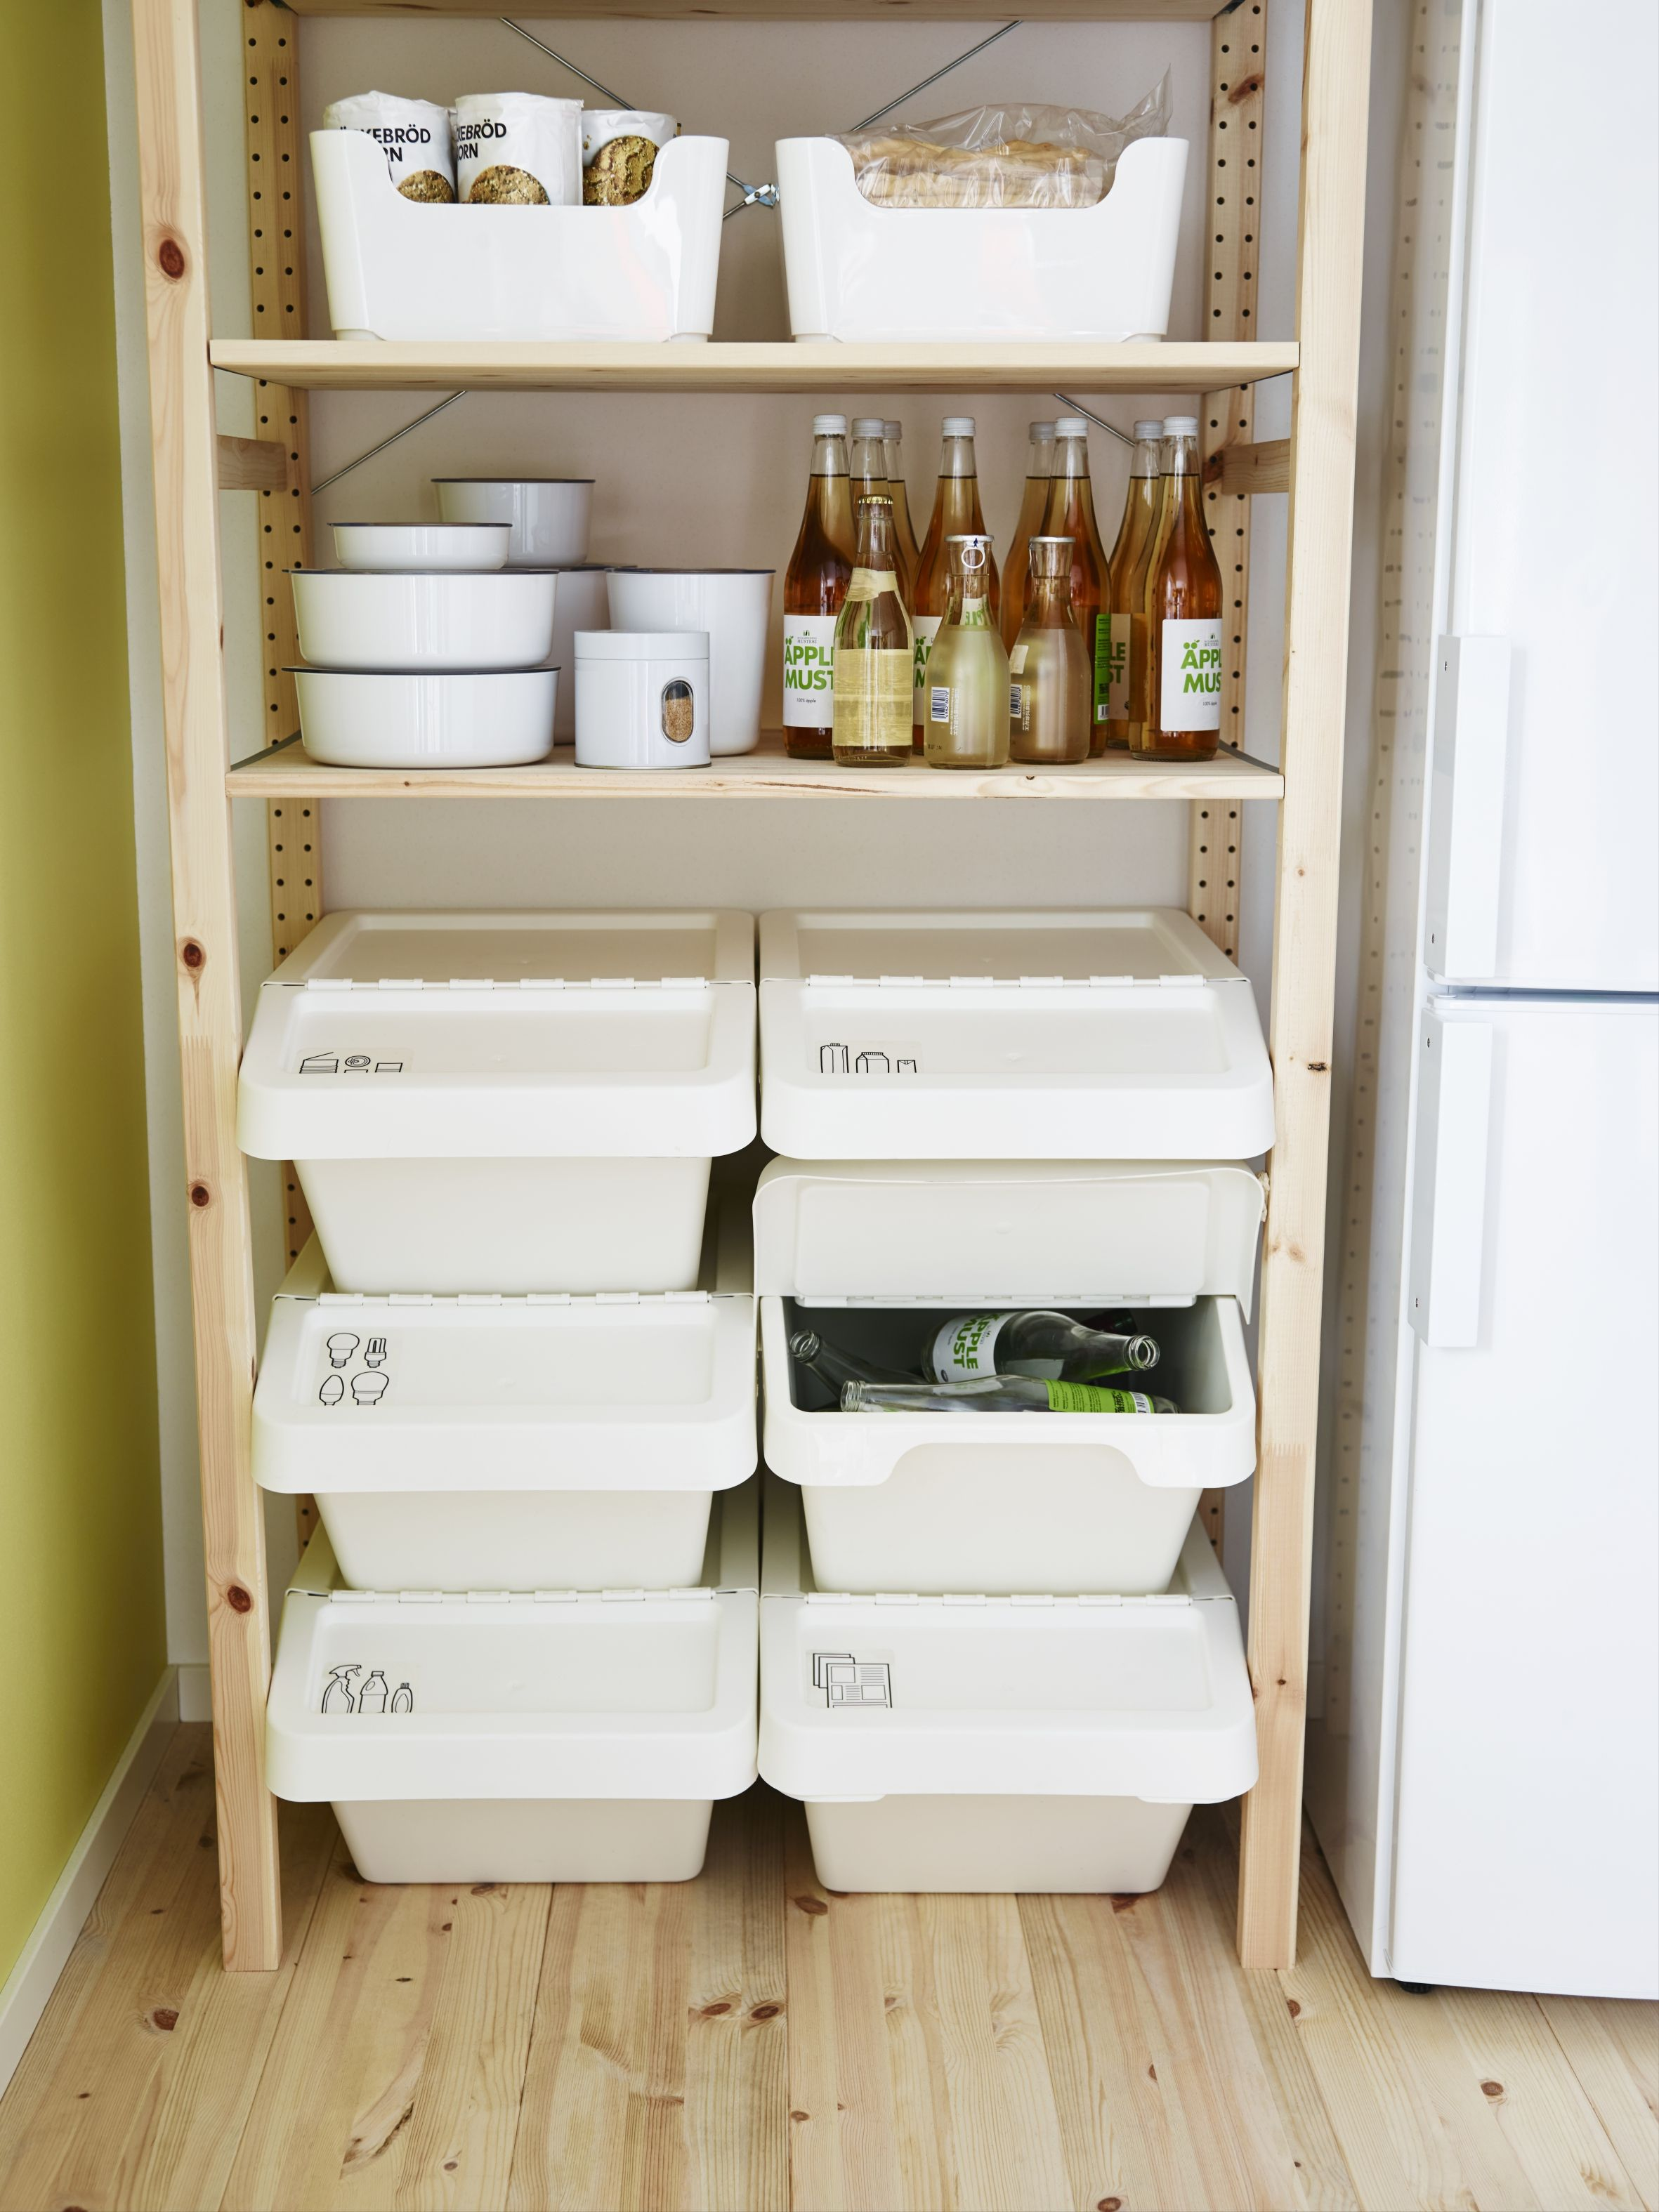 Alacena Cocina Ikea Ikea Labeled Stackable Recycling Bins Pantry Shelf